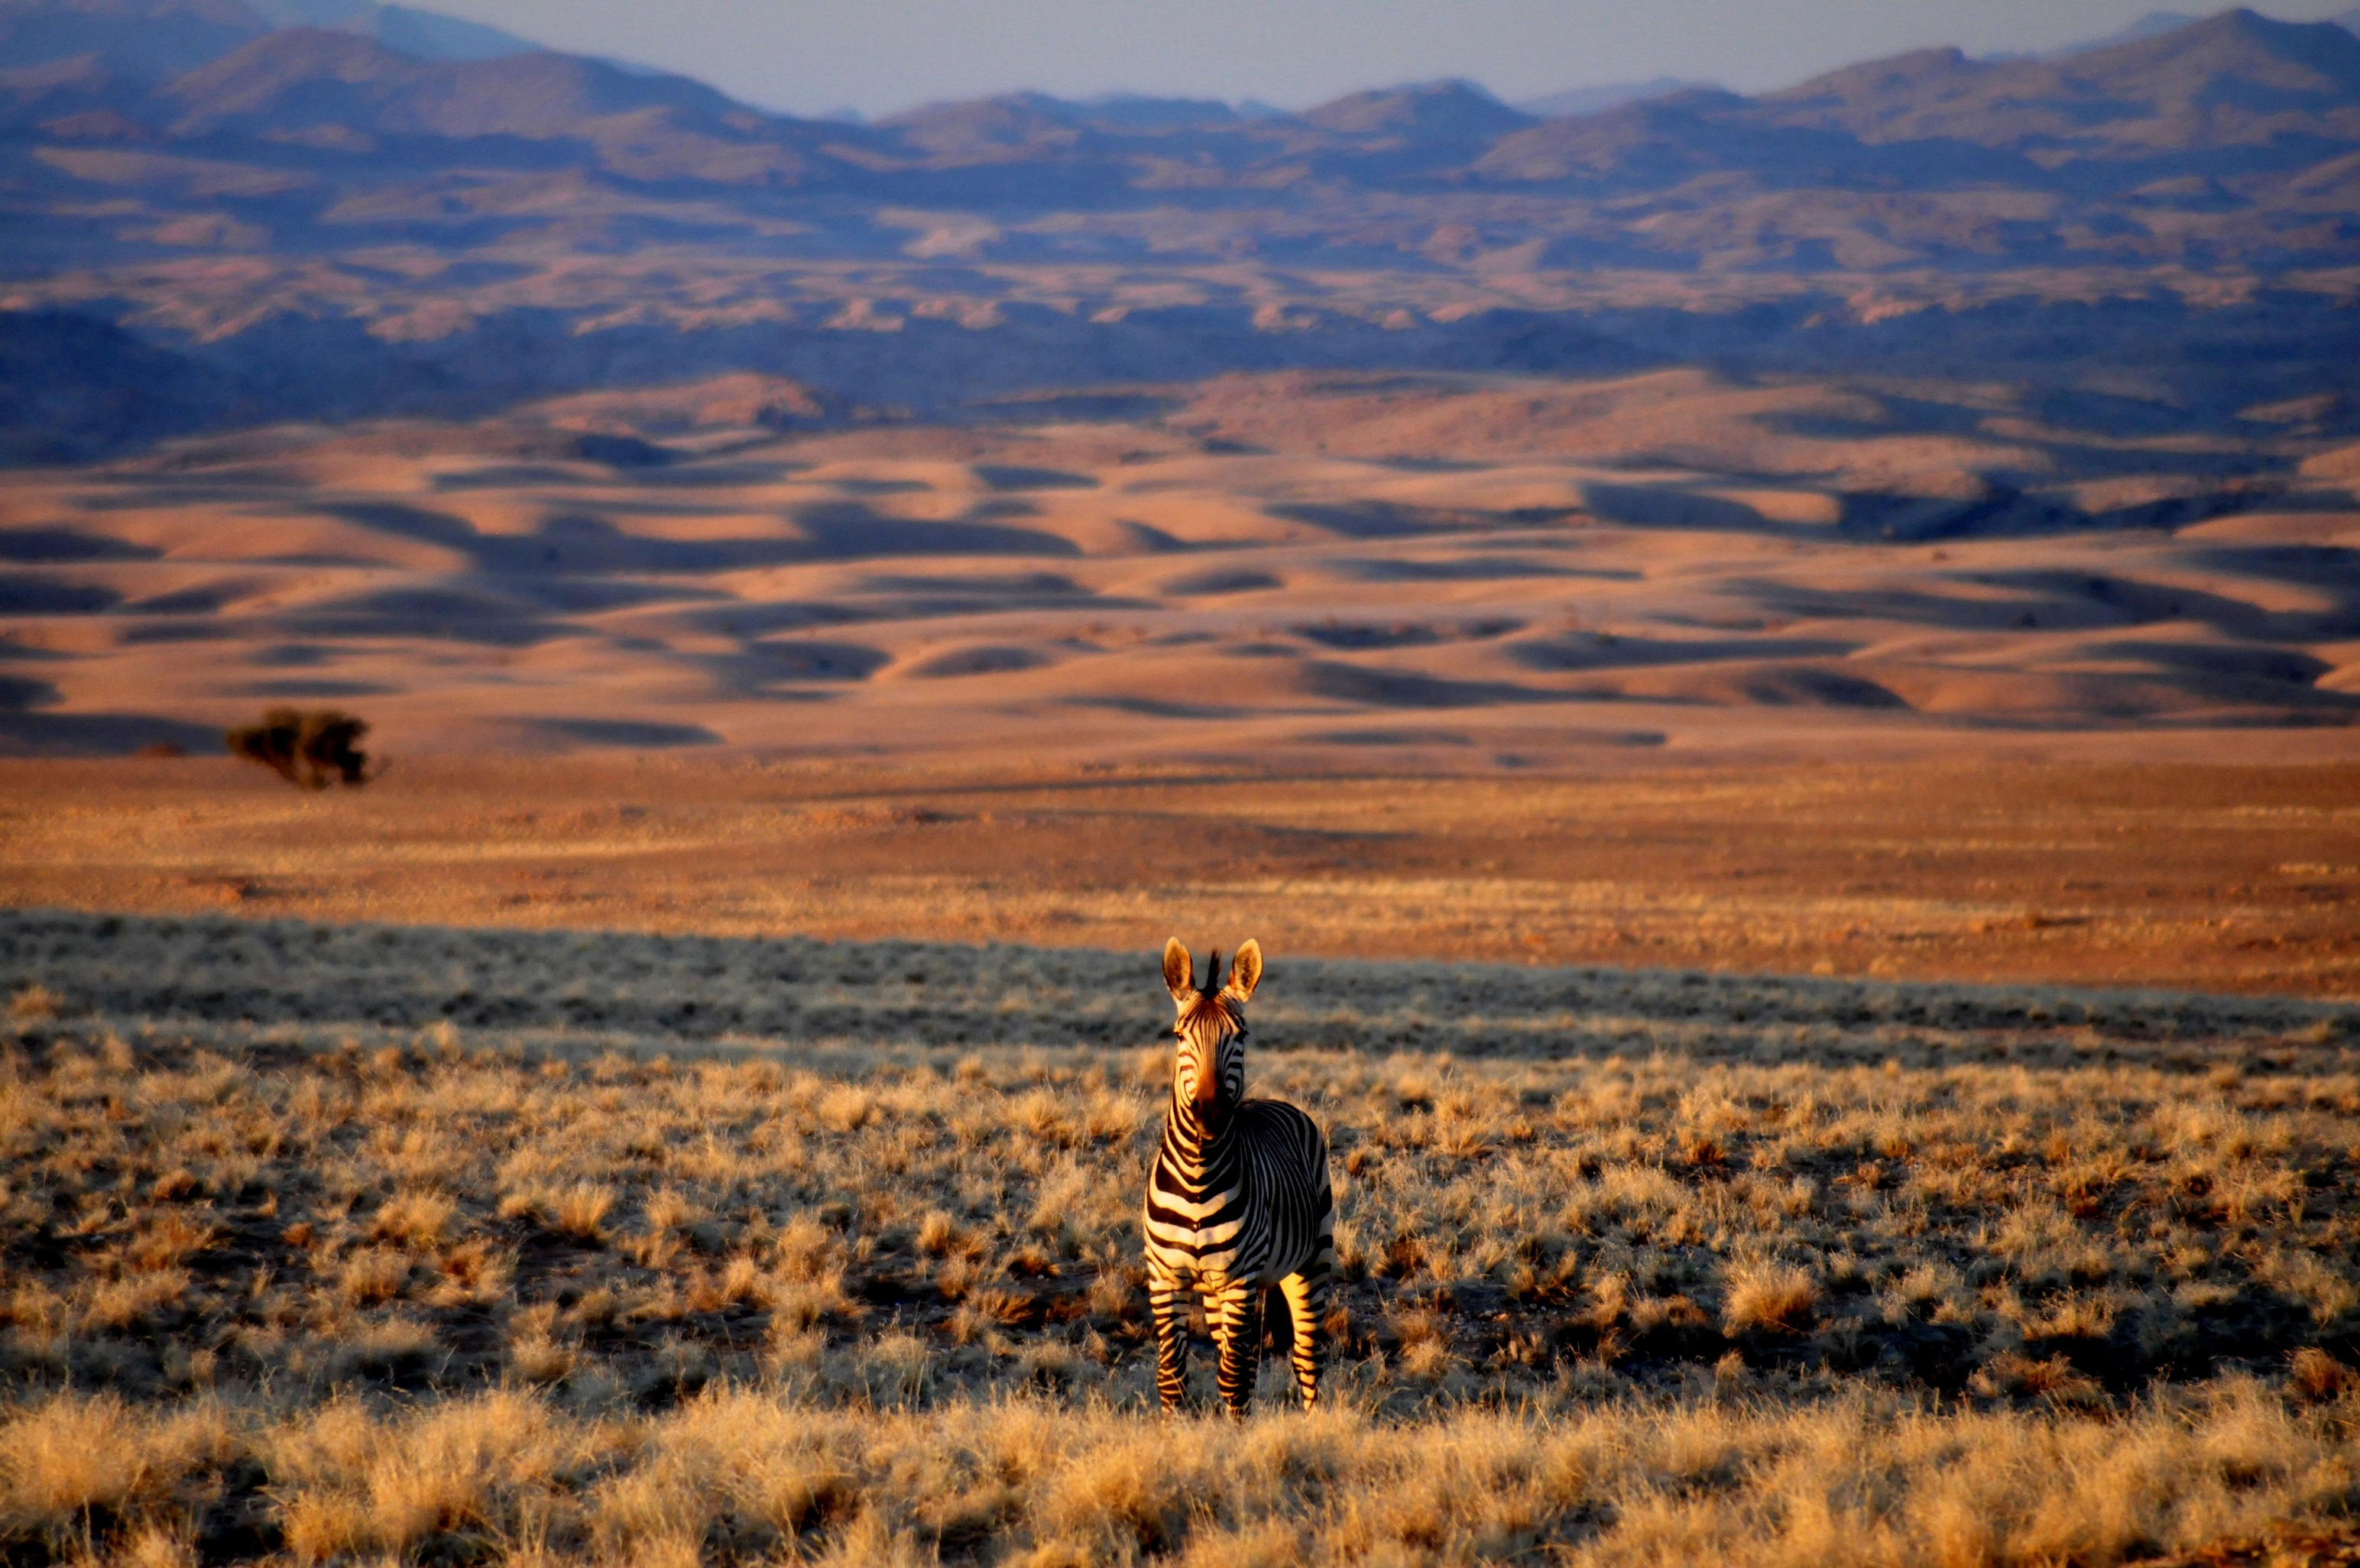 Afrika Safari in Namibia - in der Kleingruppe